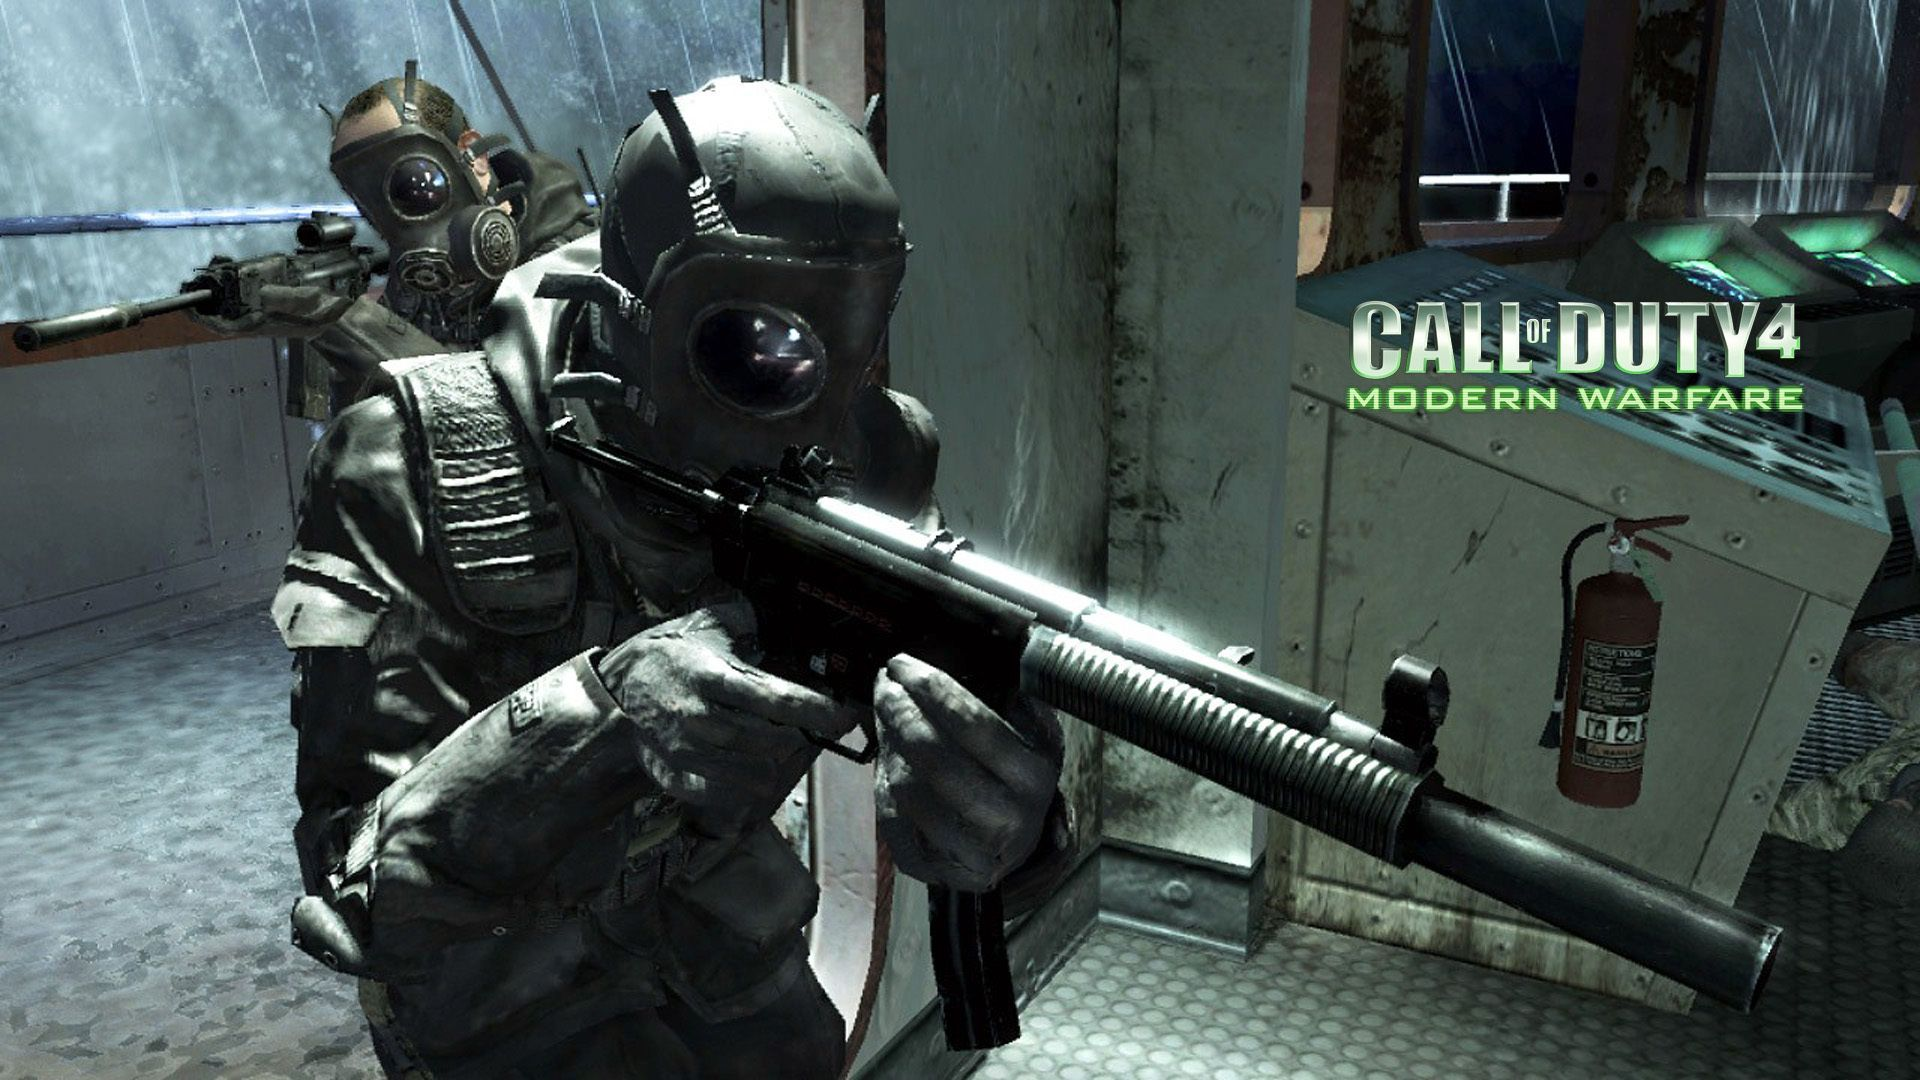 Call Of Duty Wallpaper Modern Warfare Call Of Duty Latest Video Games